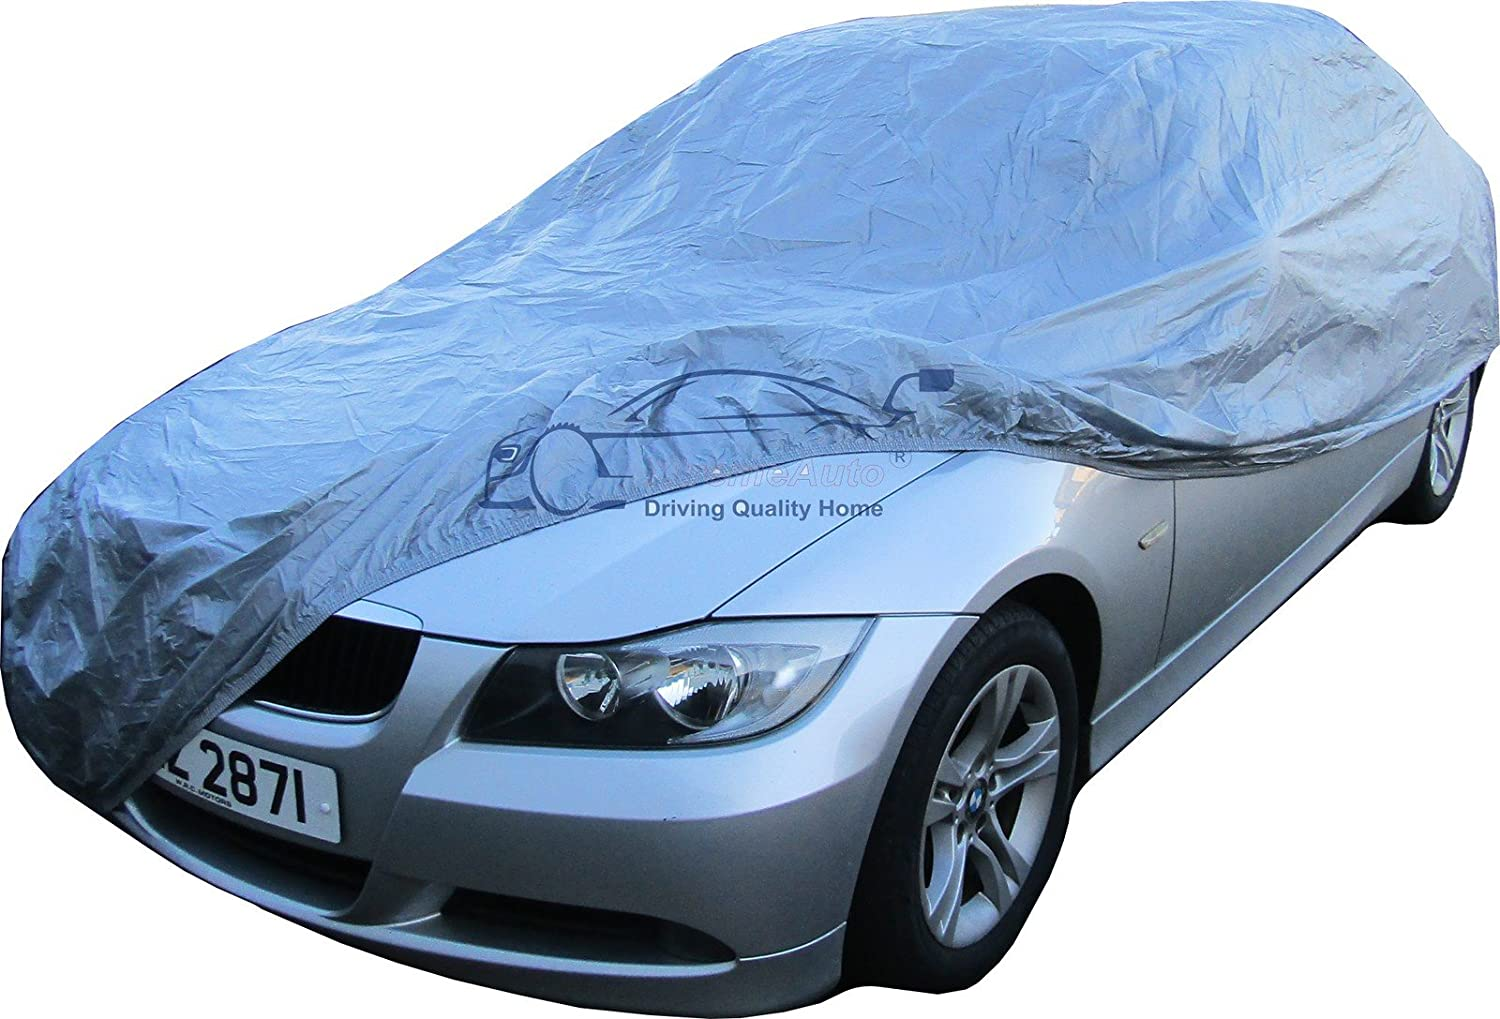 XtremeAuto® VAUXHALL Corsa 5 door PVC LIGHT WEIGHT Waterproof Winter Car Cover